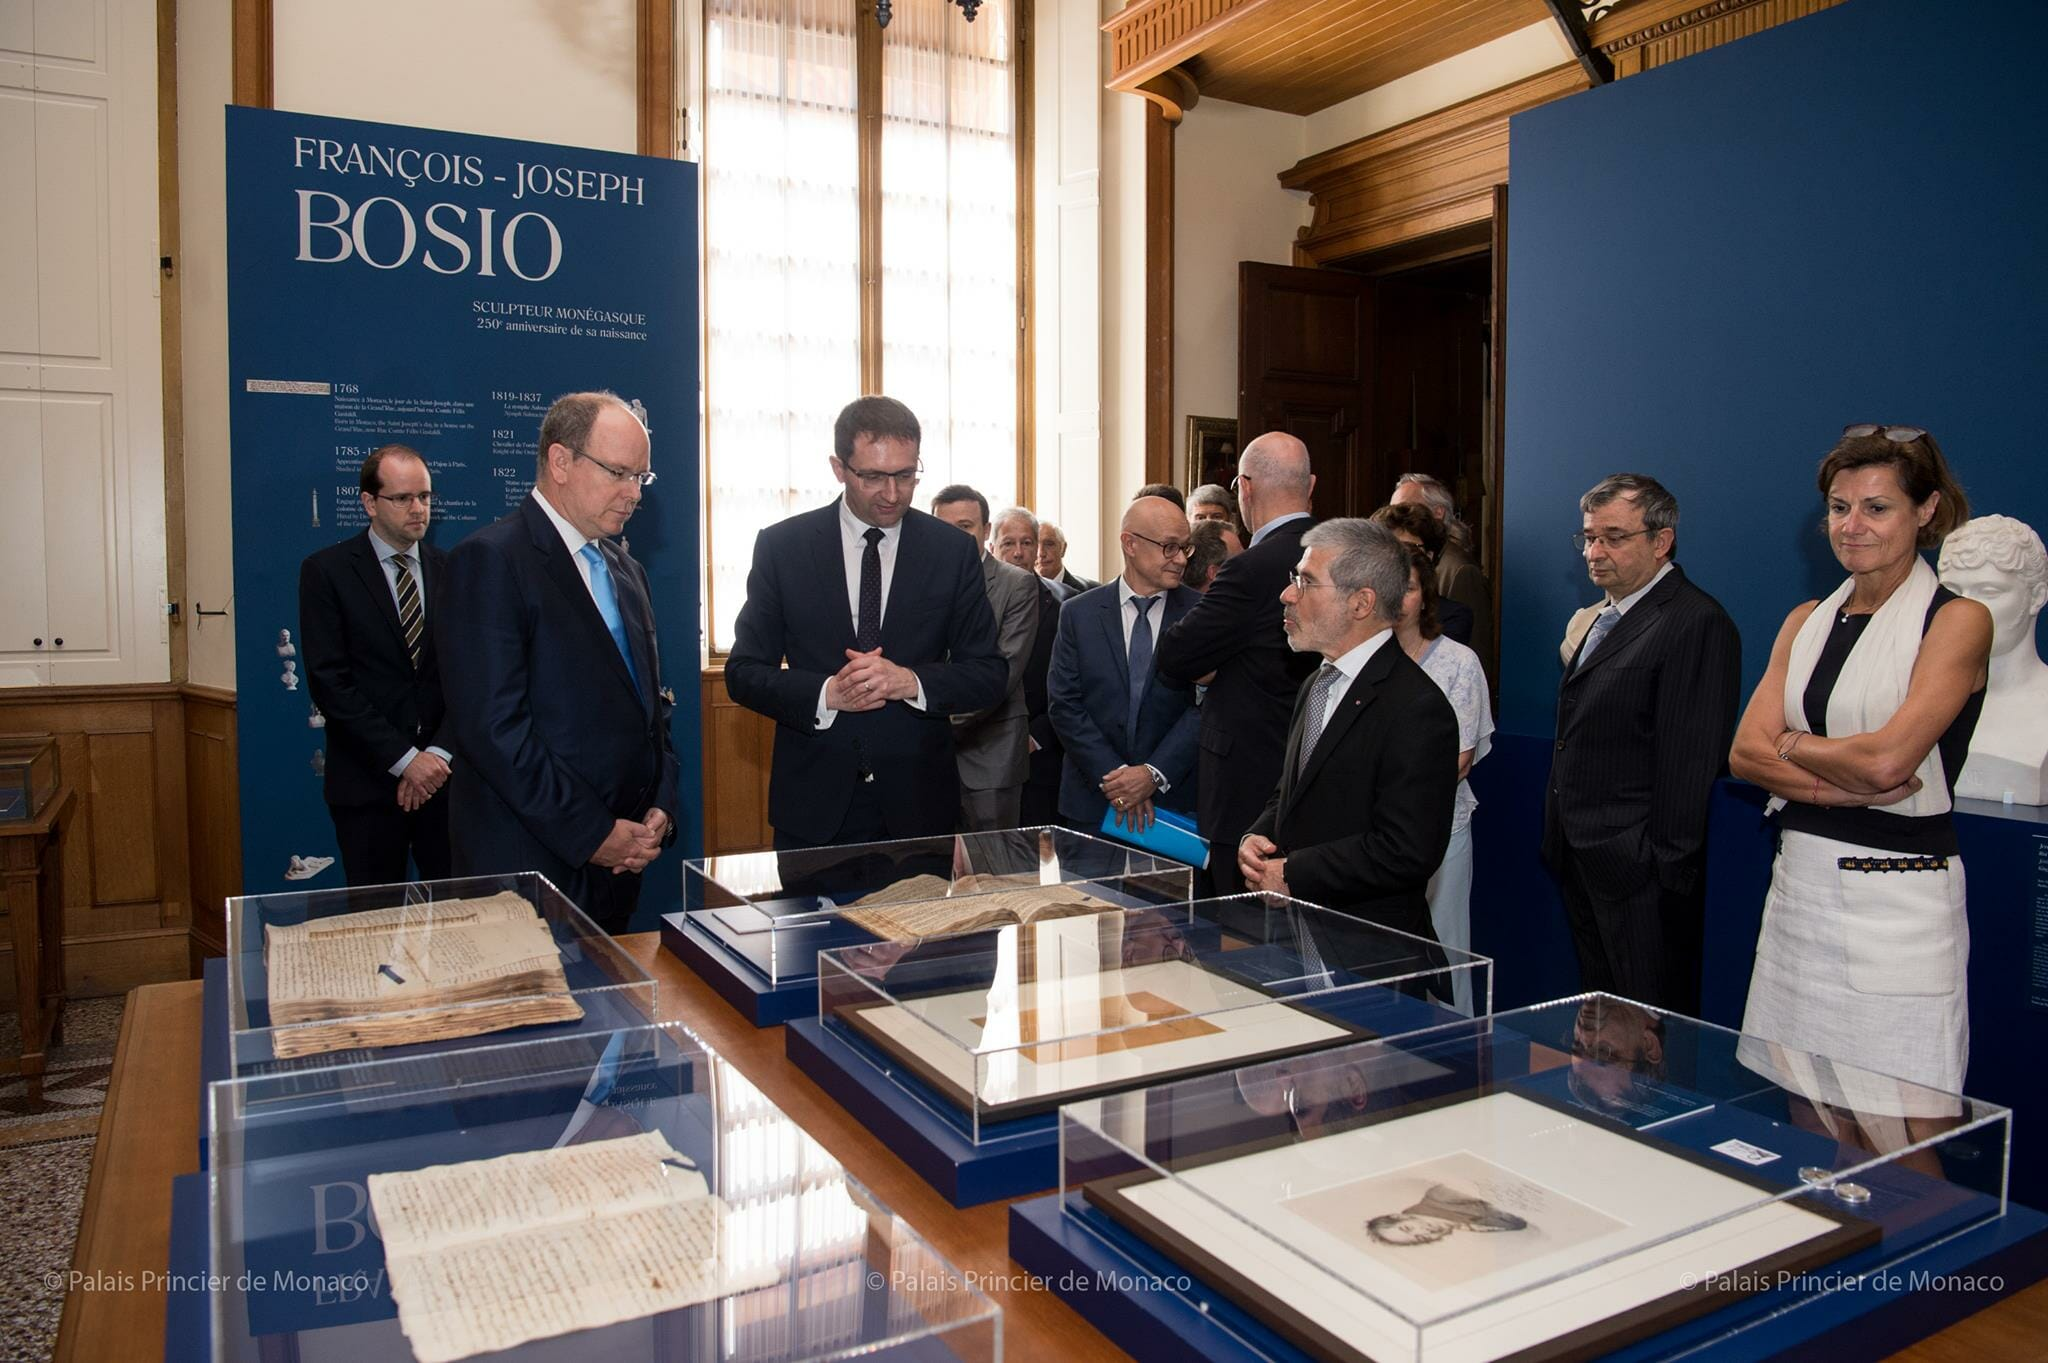 Prince inaugurates Bosio exhibition